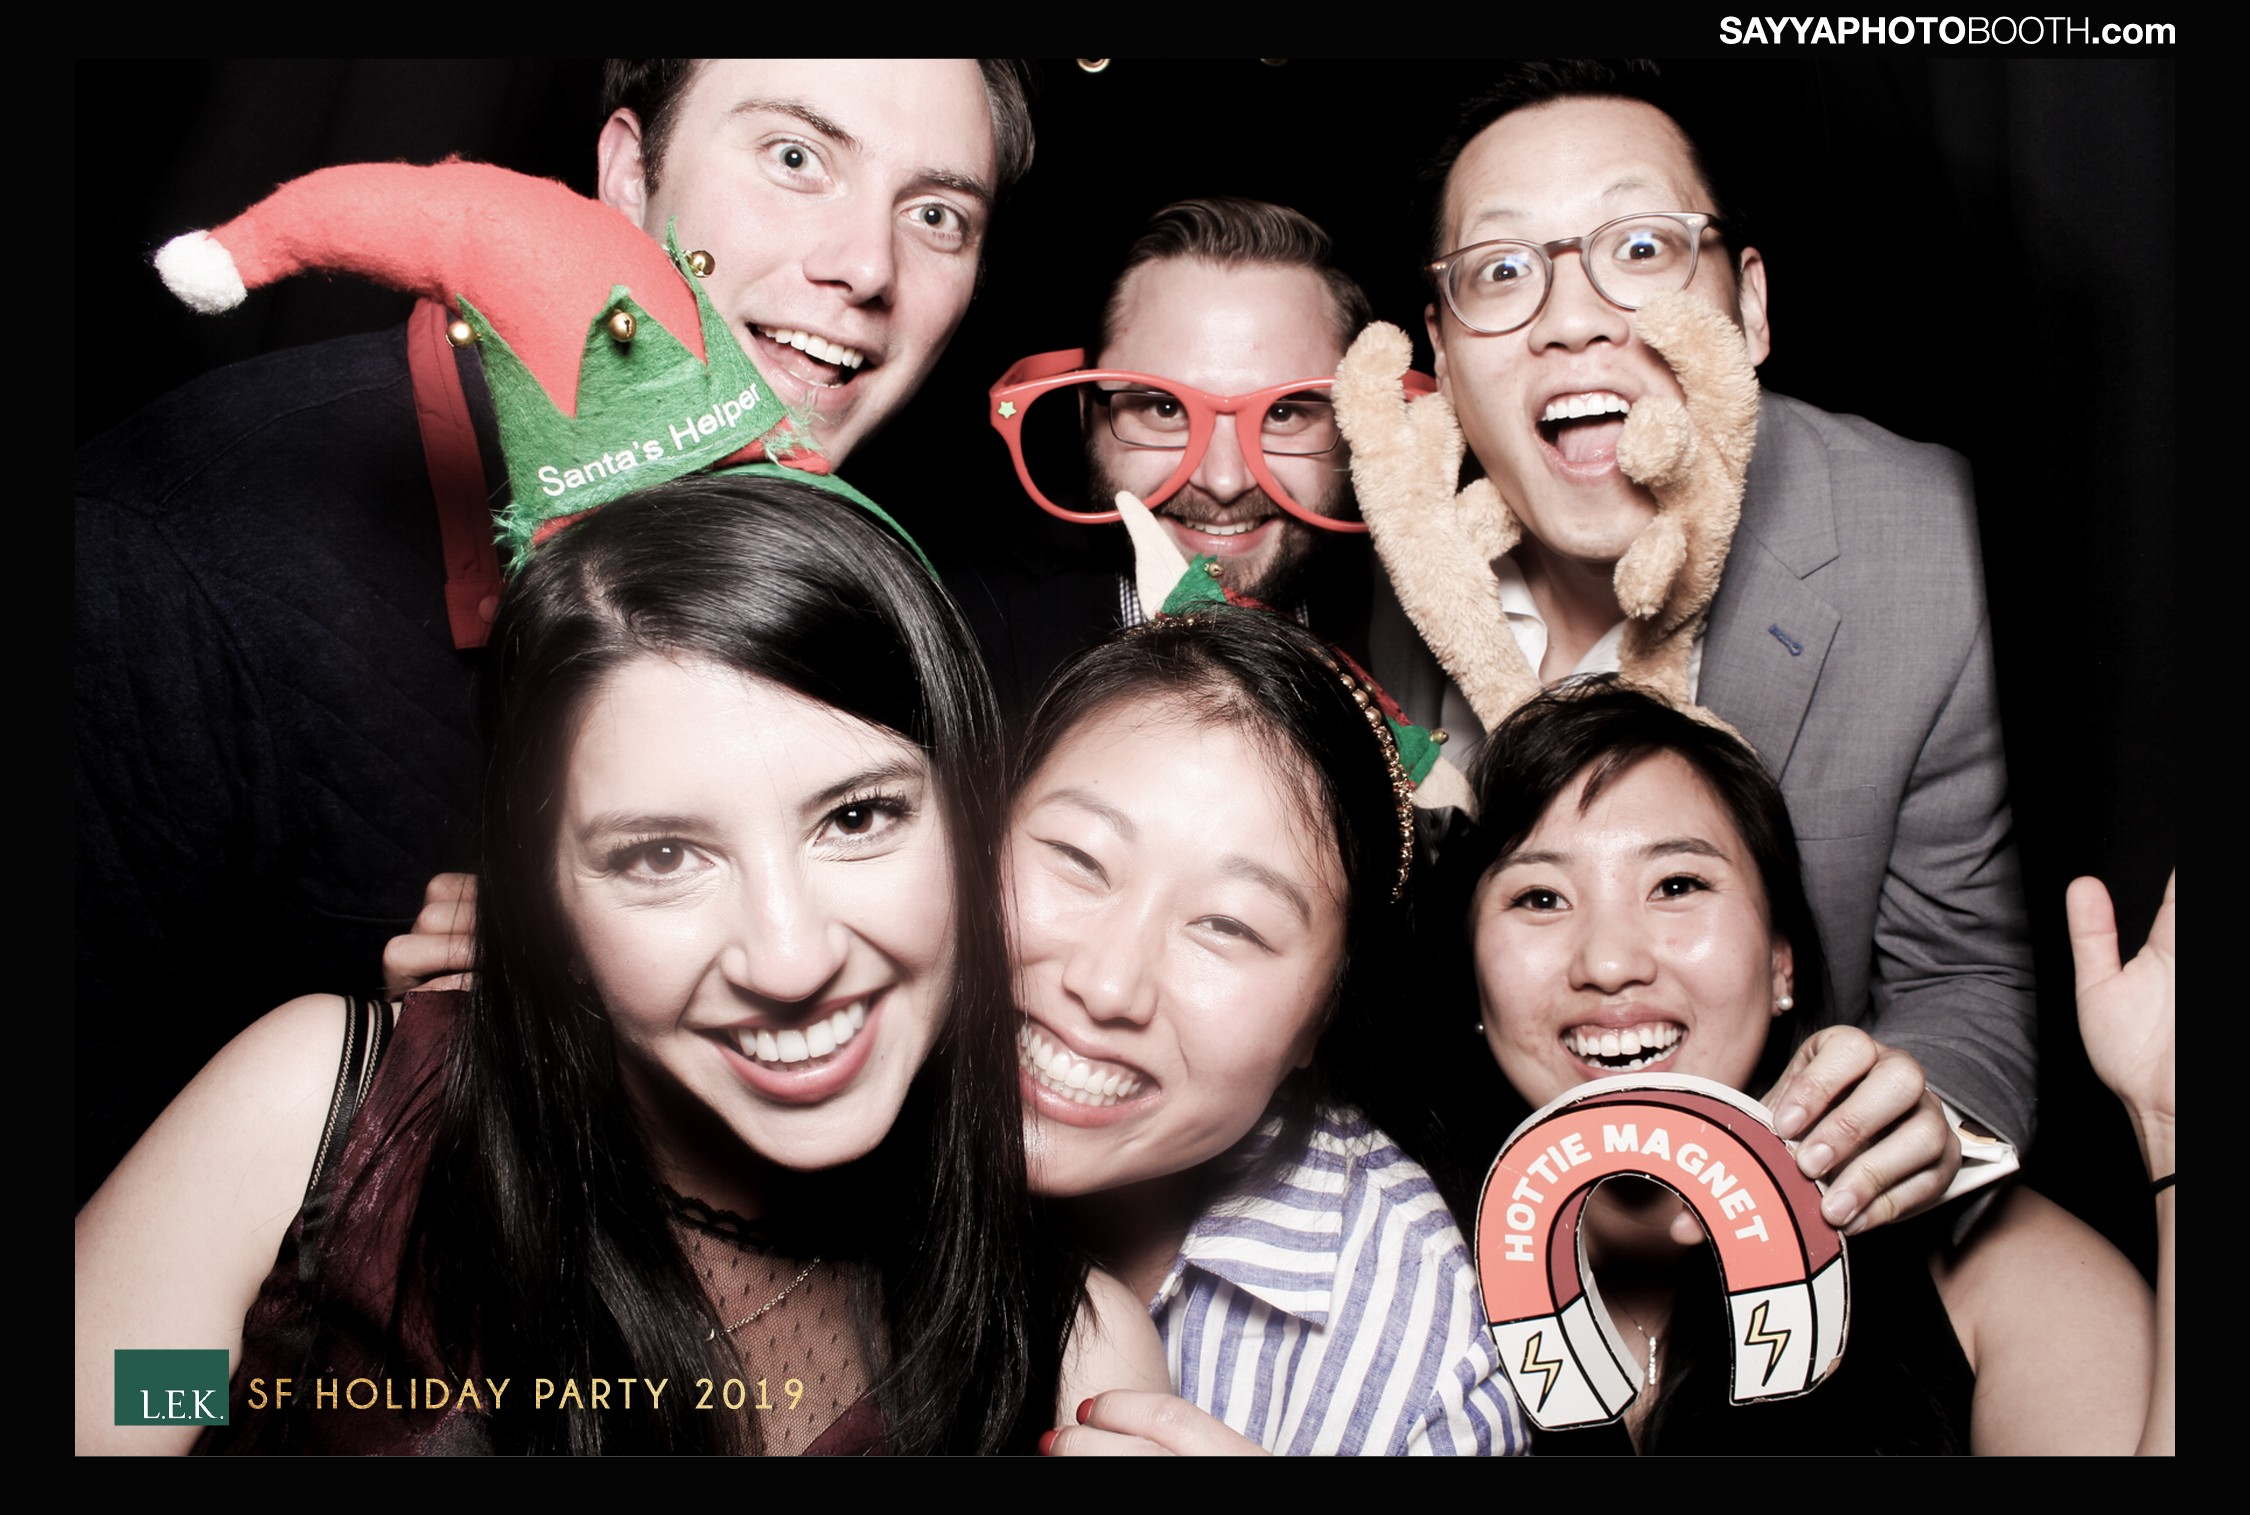 L.E.K. Consulting Holiday Party